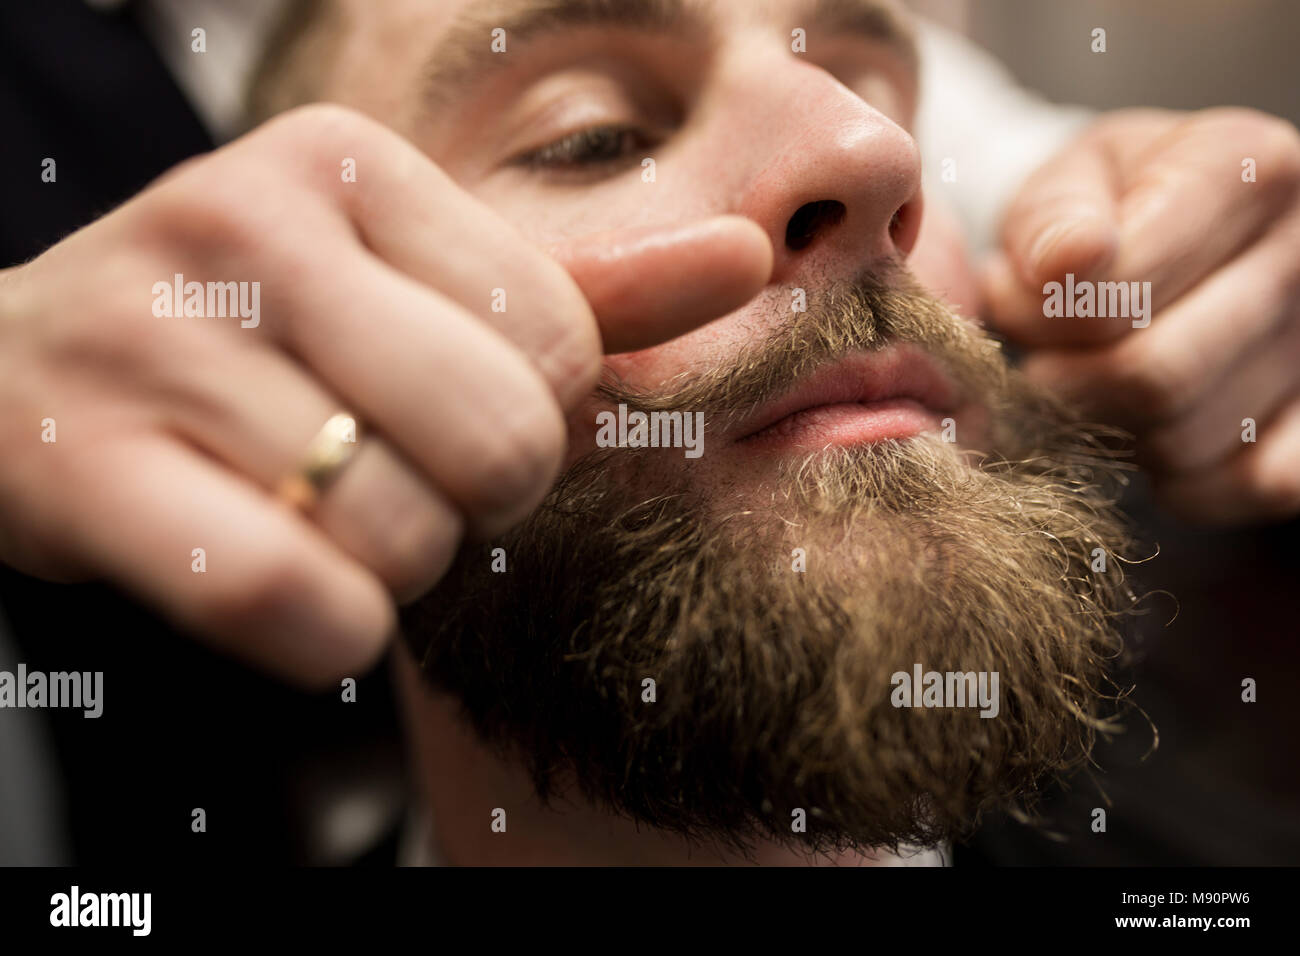 Close up portrait of bearded man having mustache curling up - Stock Image